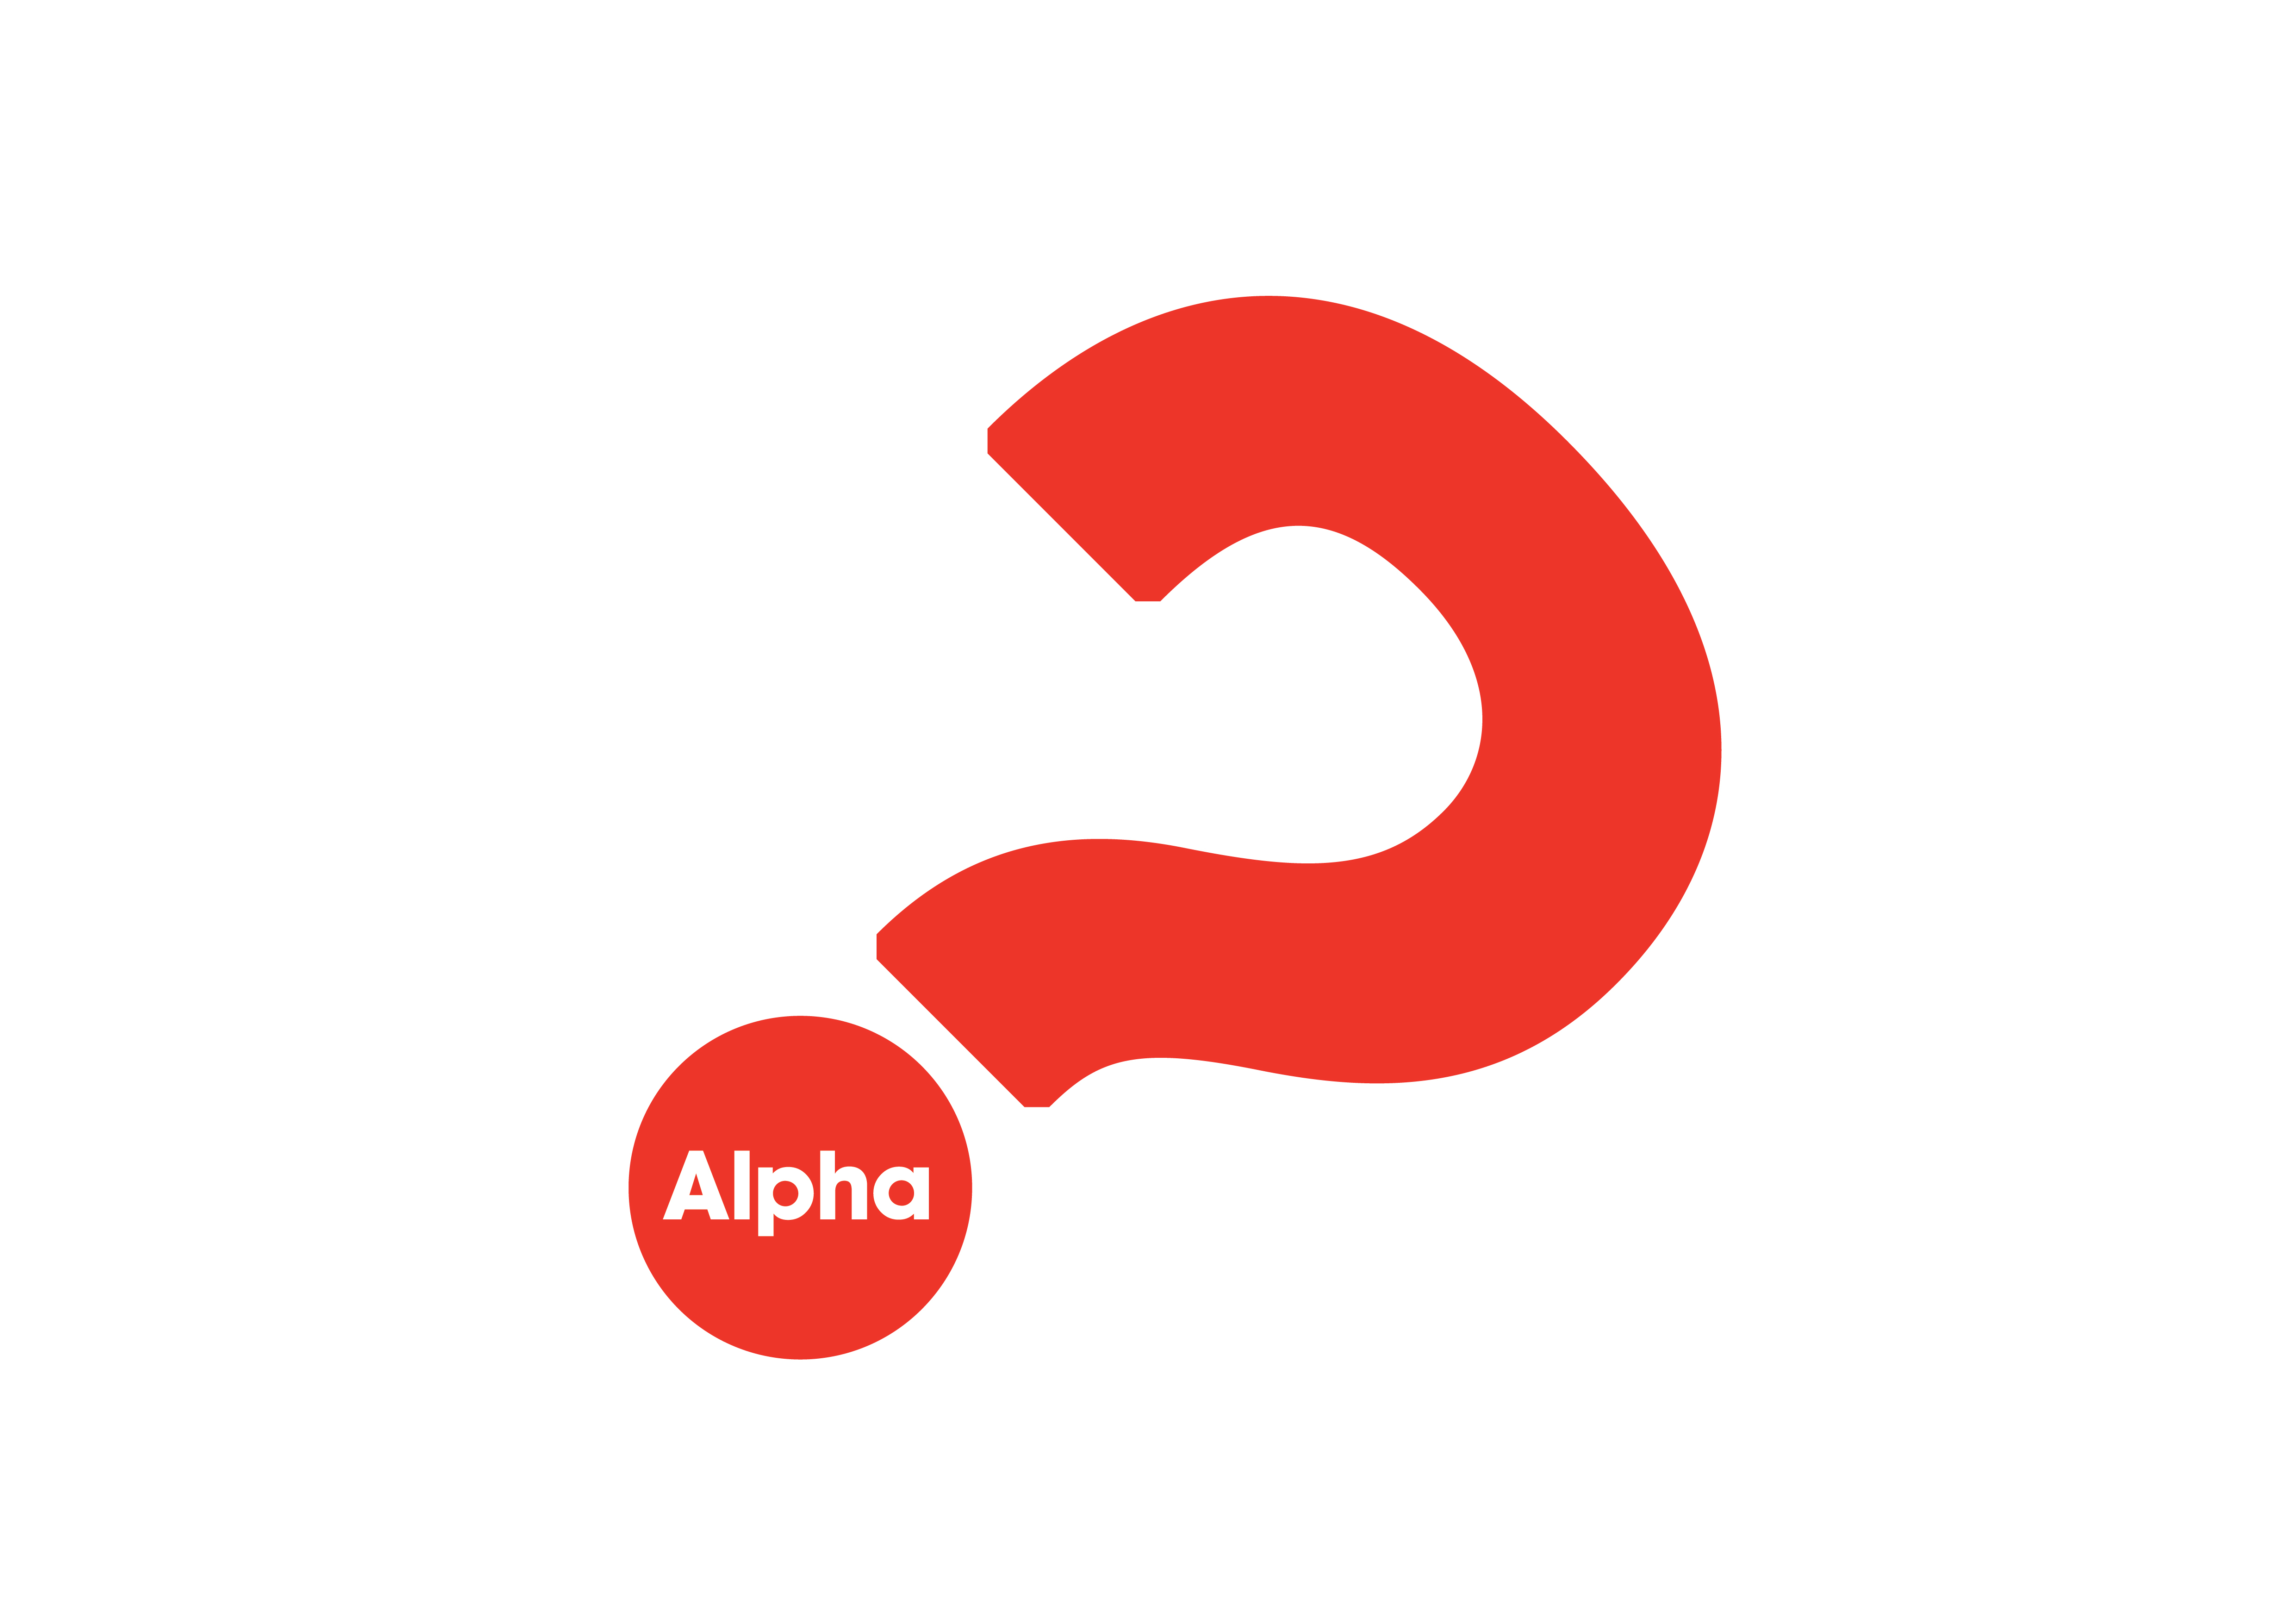 Alpha 2018 Movie 4K Wallpapers | Wallpapers HD